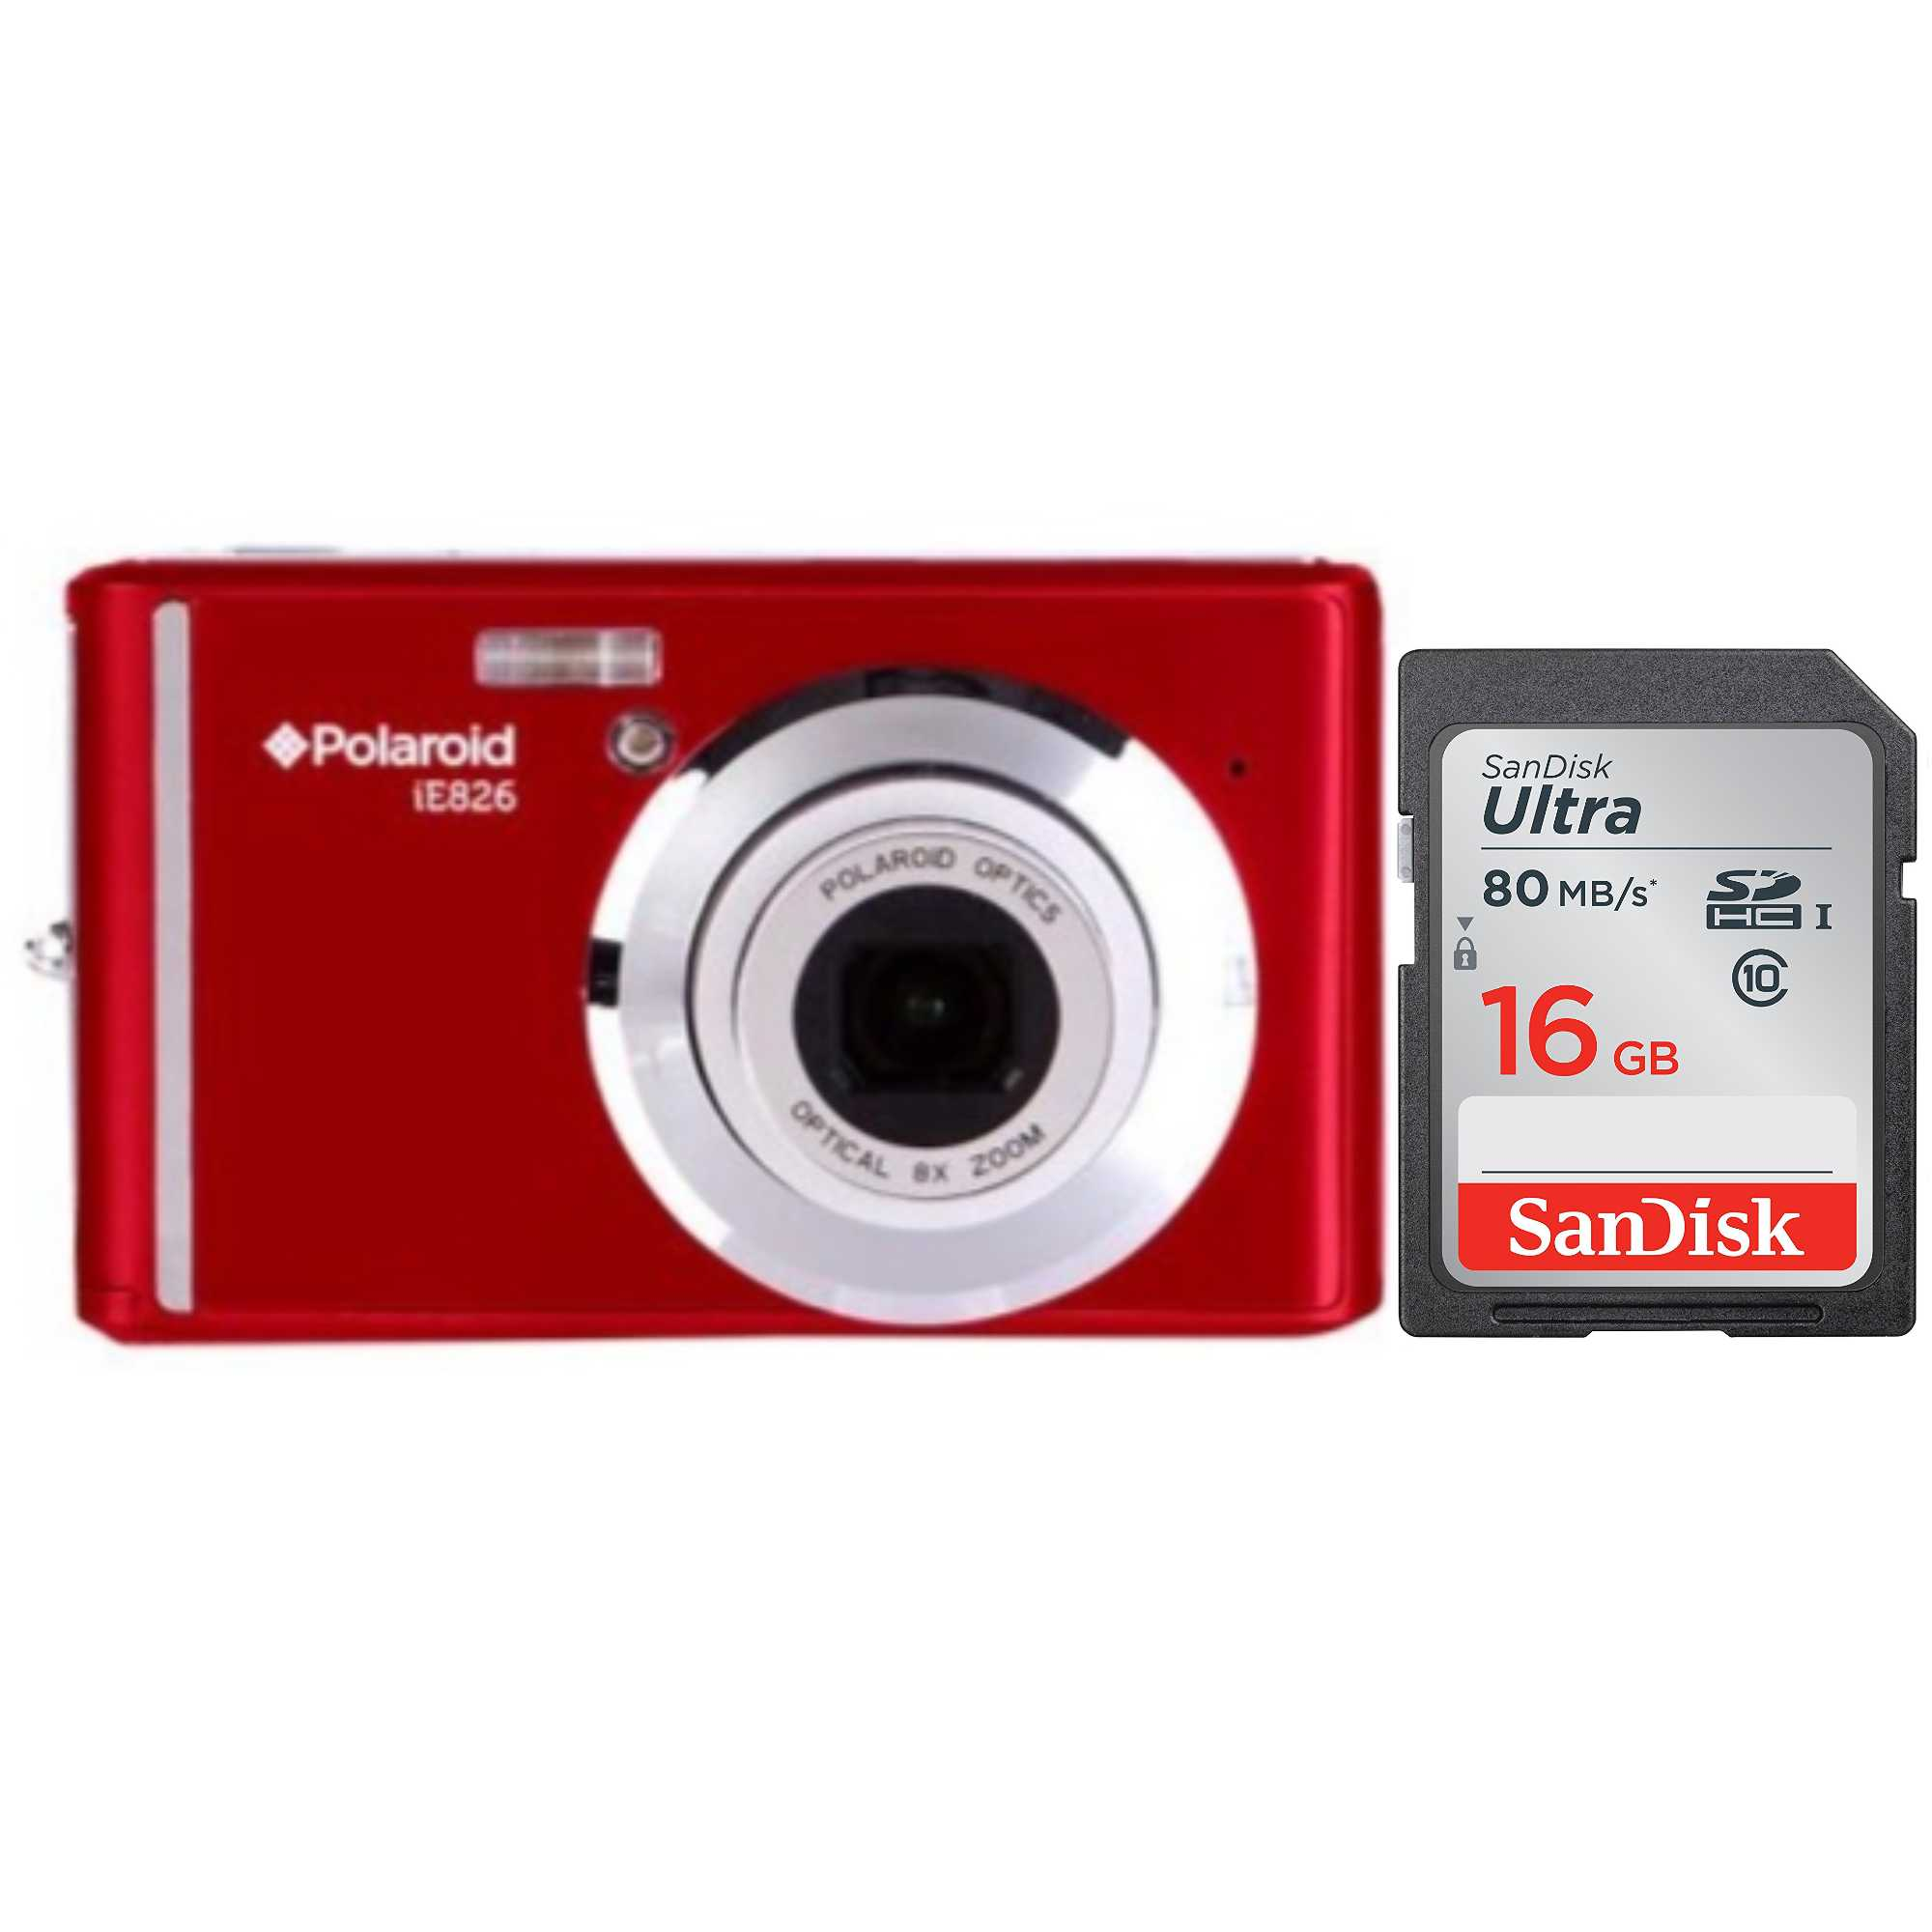 Polaroid IE826 18MP Digital Camera (Red) + SanDisk 16GB Memory Card